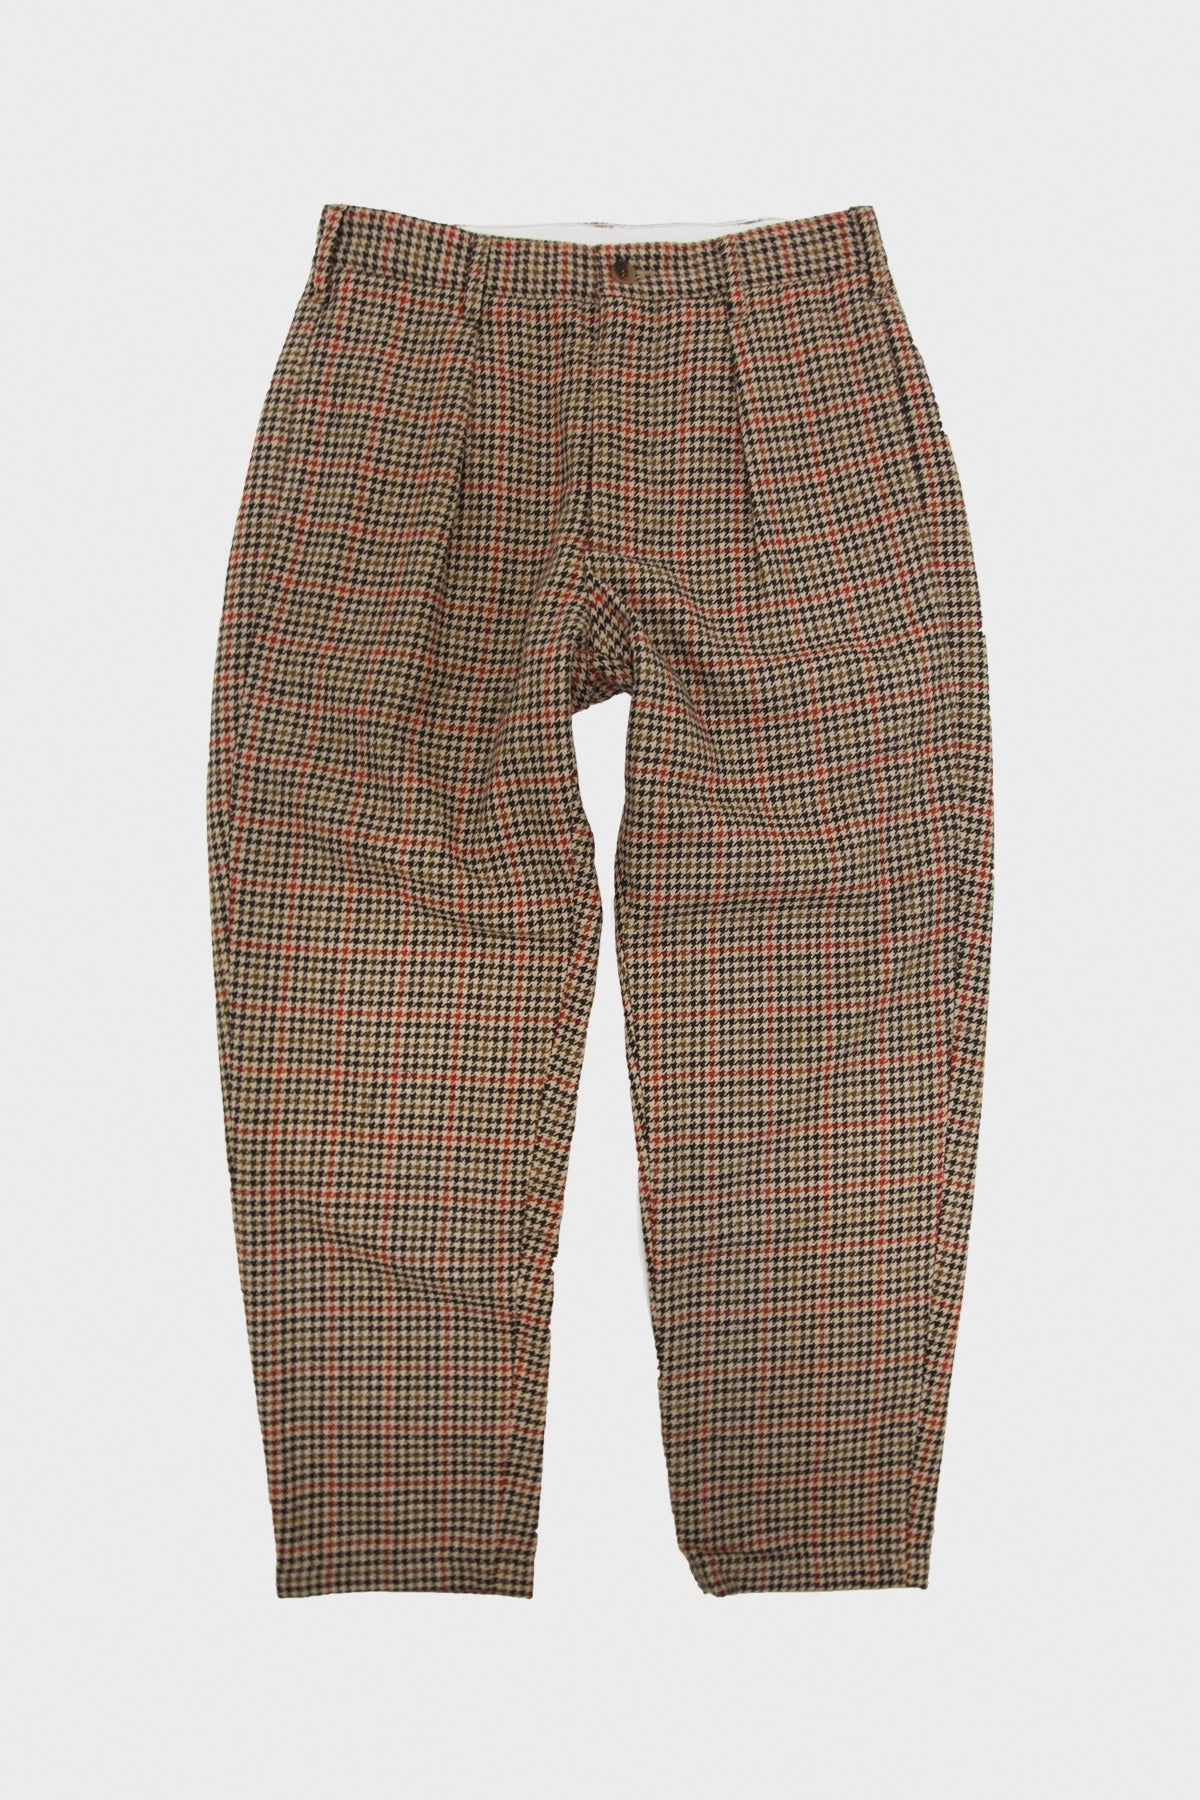 Engineered Garments - Carlyle Pant - Tan/Orange Wool Big Gunclub Check - Canoe Club